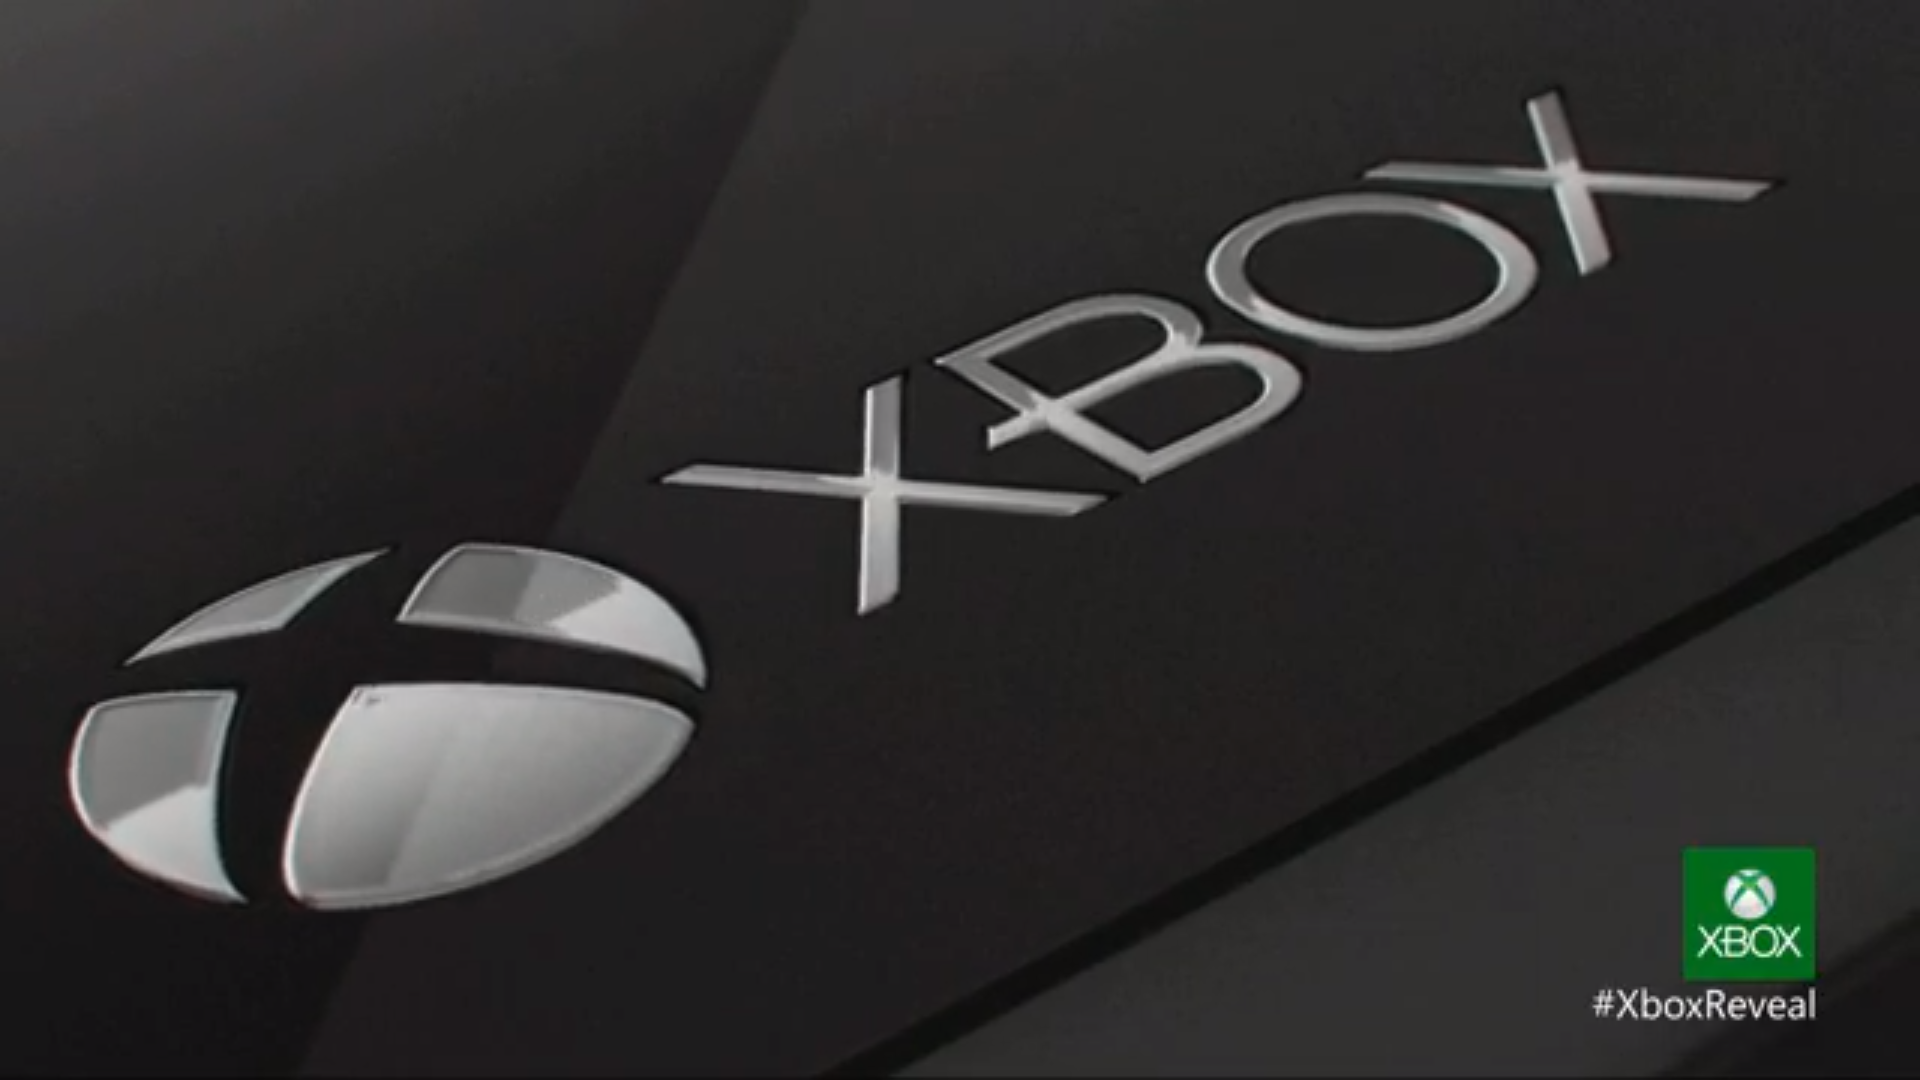 Xbox One | Xbox One Images, Pictures, Wallpapers on BsnSCB.com